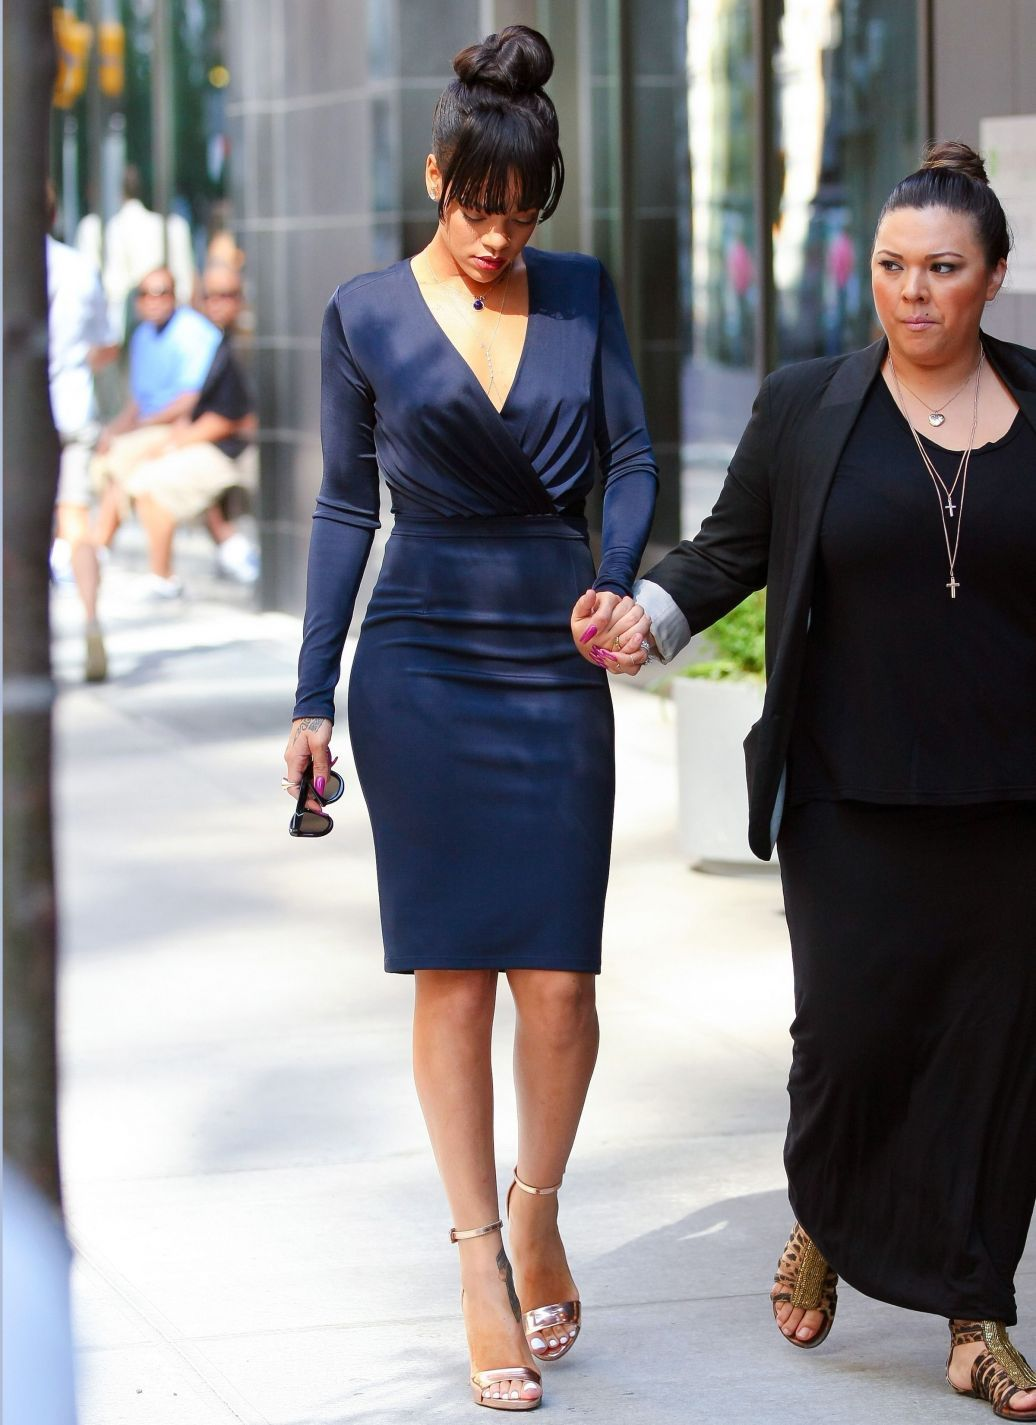 Givenchy  Navy blue long sleeve dress, Rihanna style, Funeral outfit